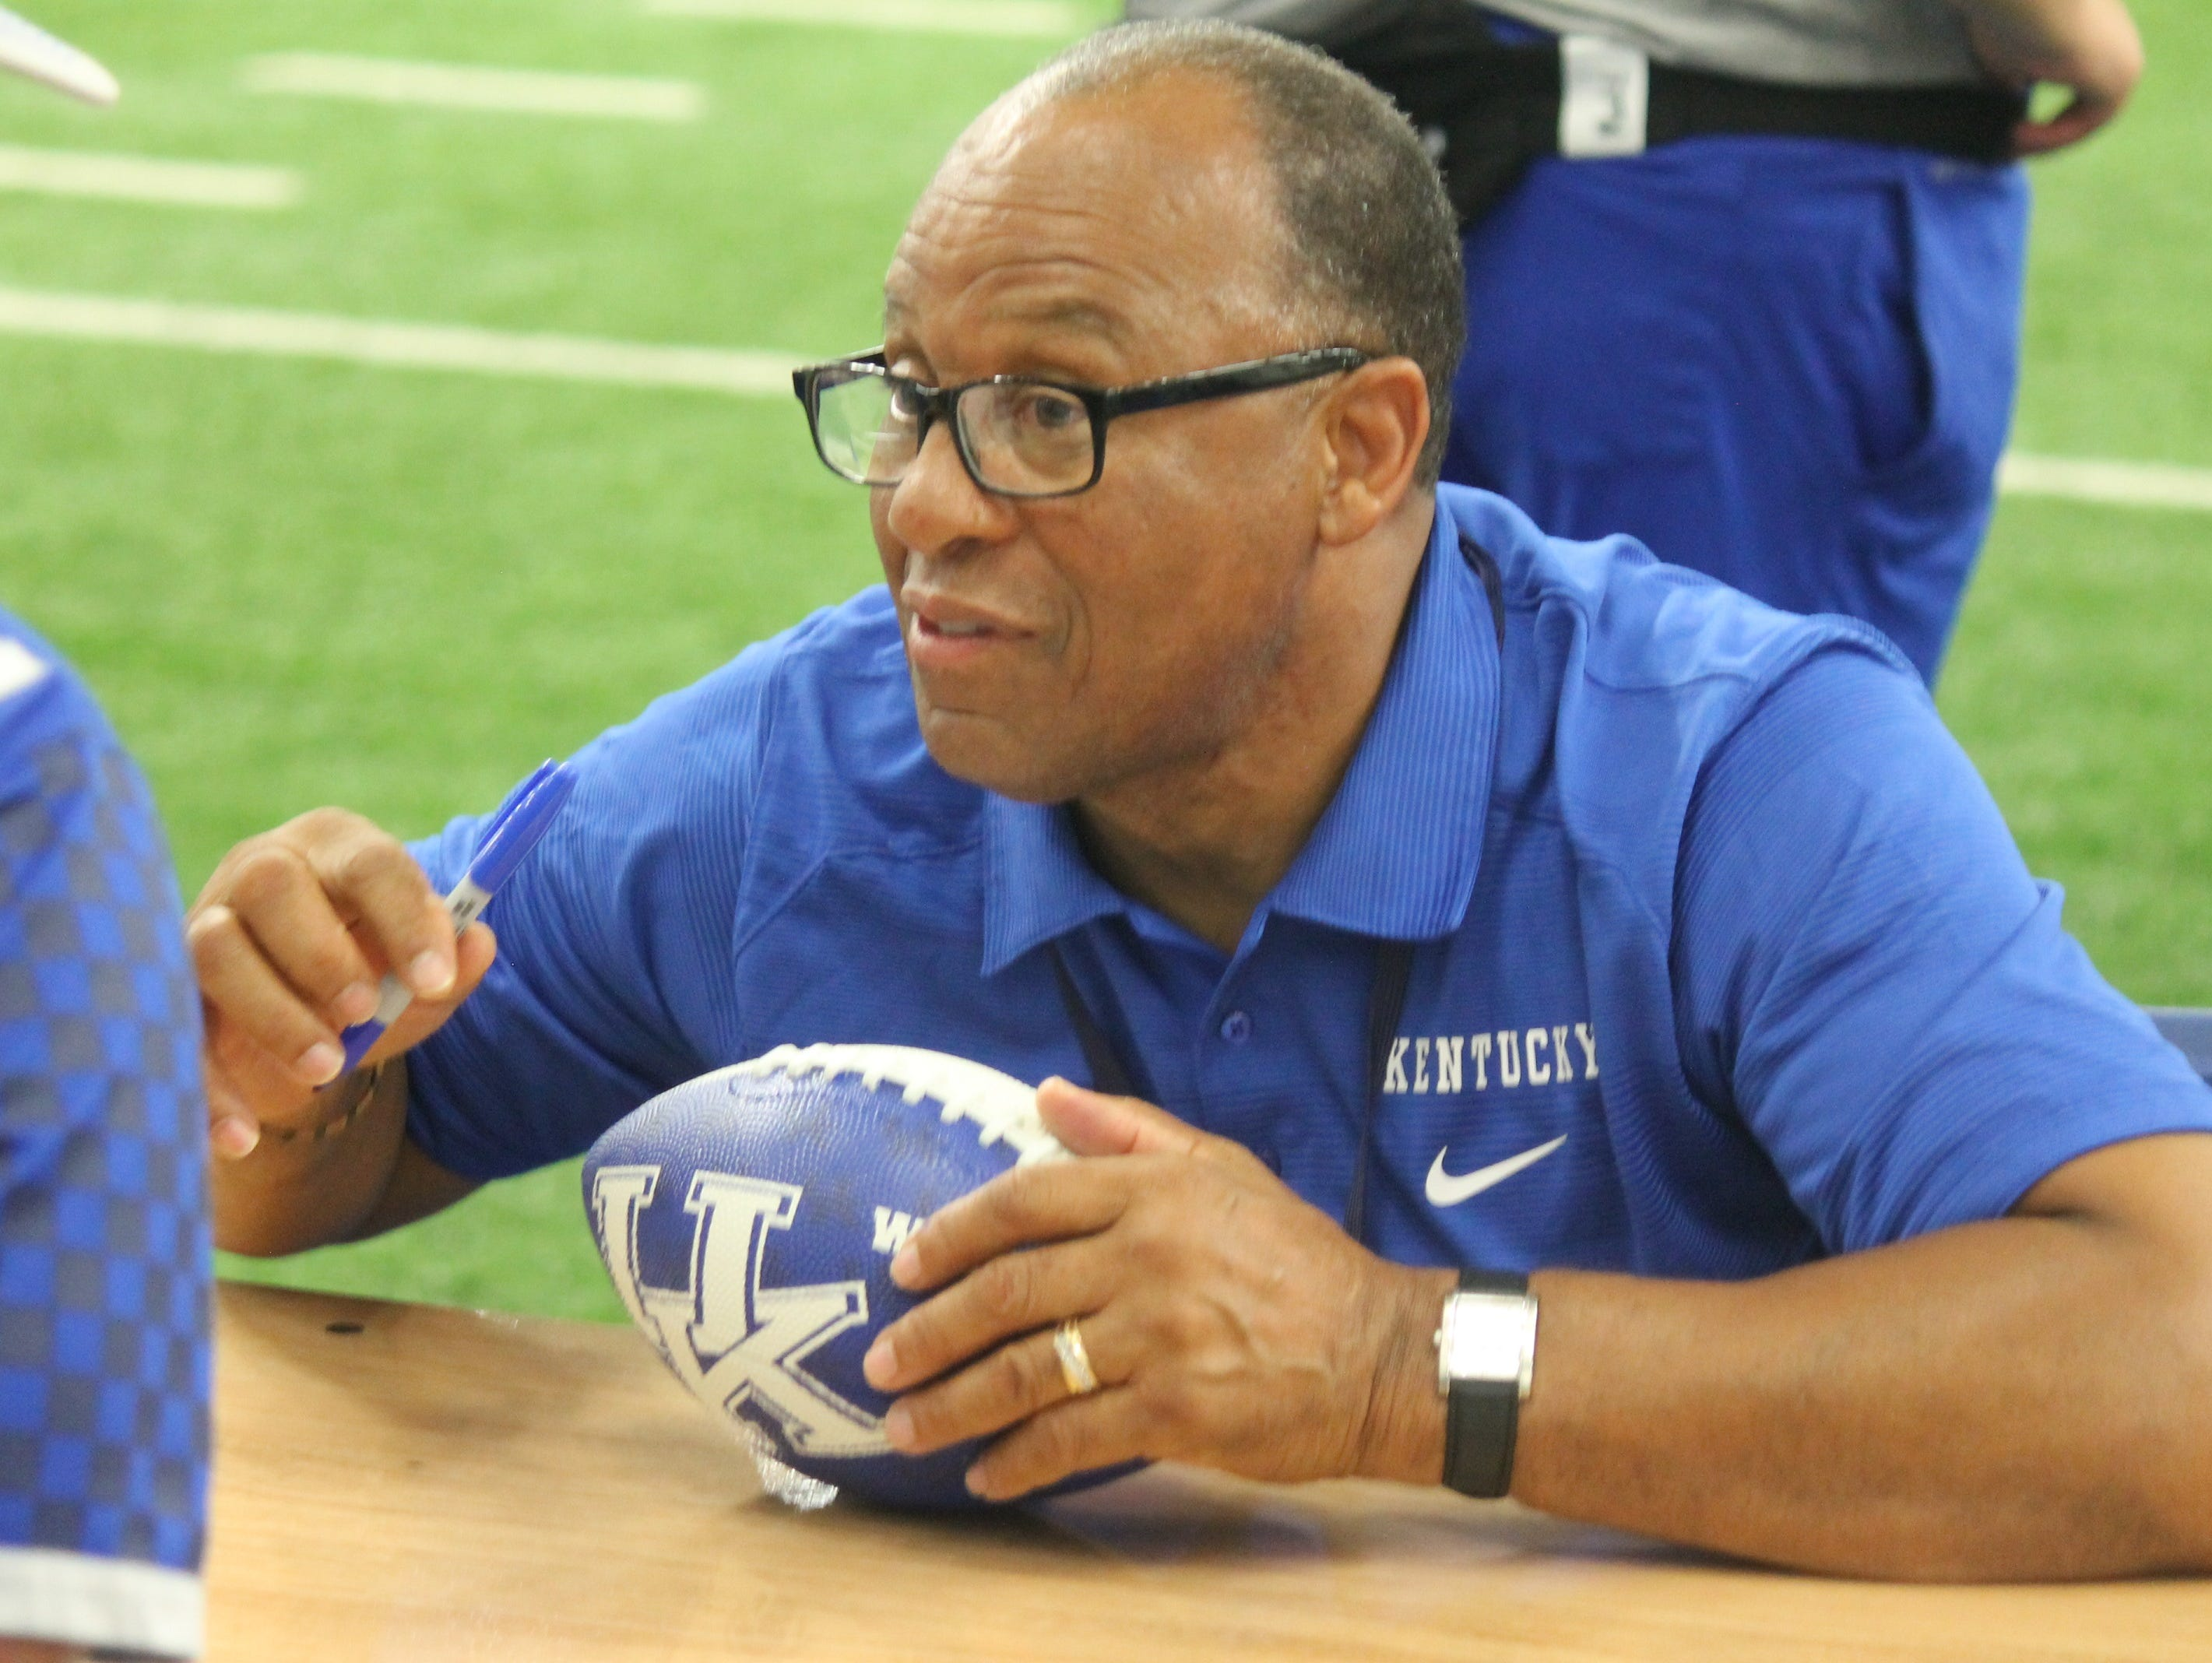 Former UK football player Wilbur Hackett, the first African American team captain in the SEC, signed autographs as part of UK's 2016 fan day festivities.